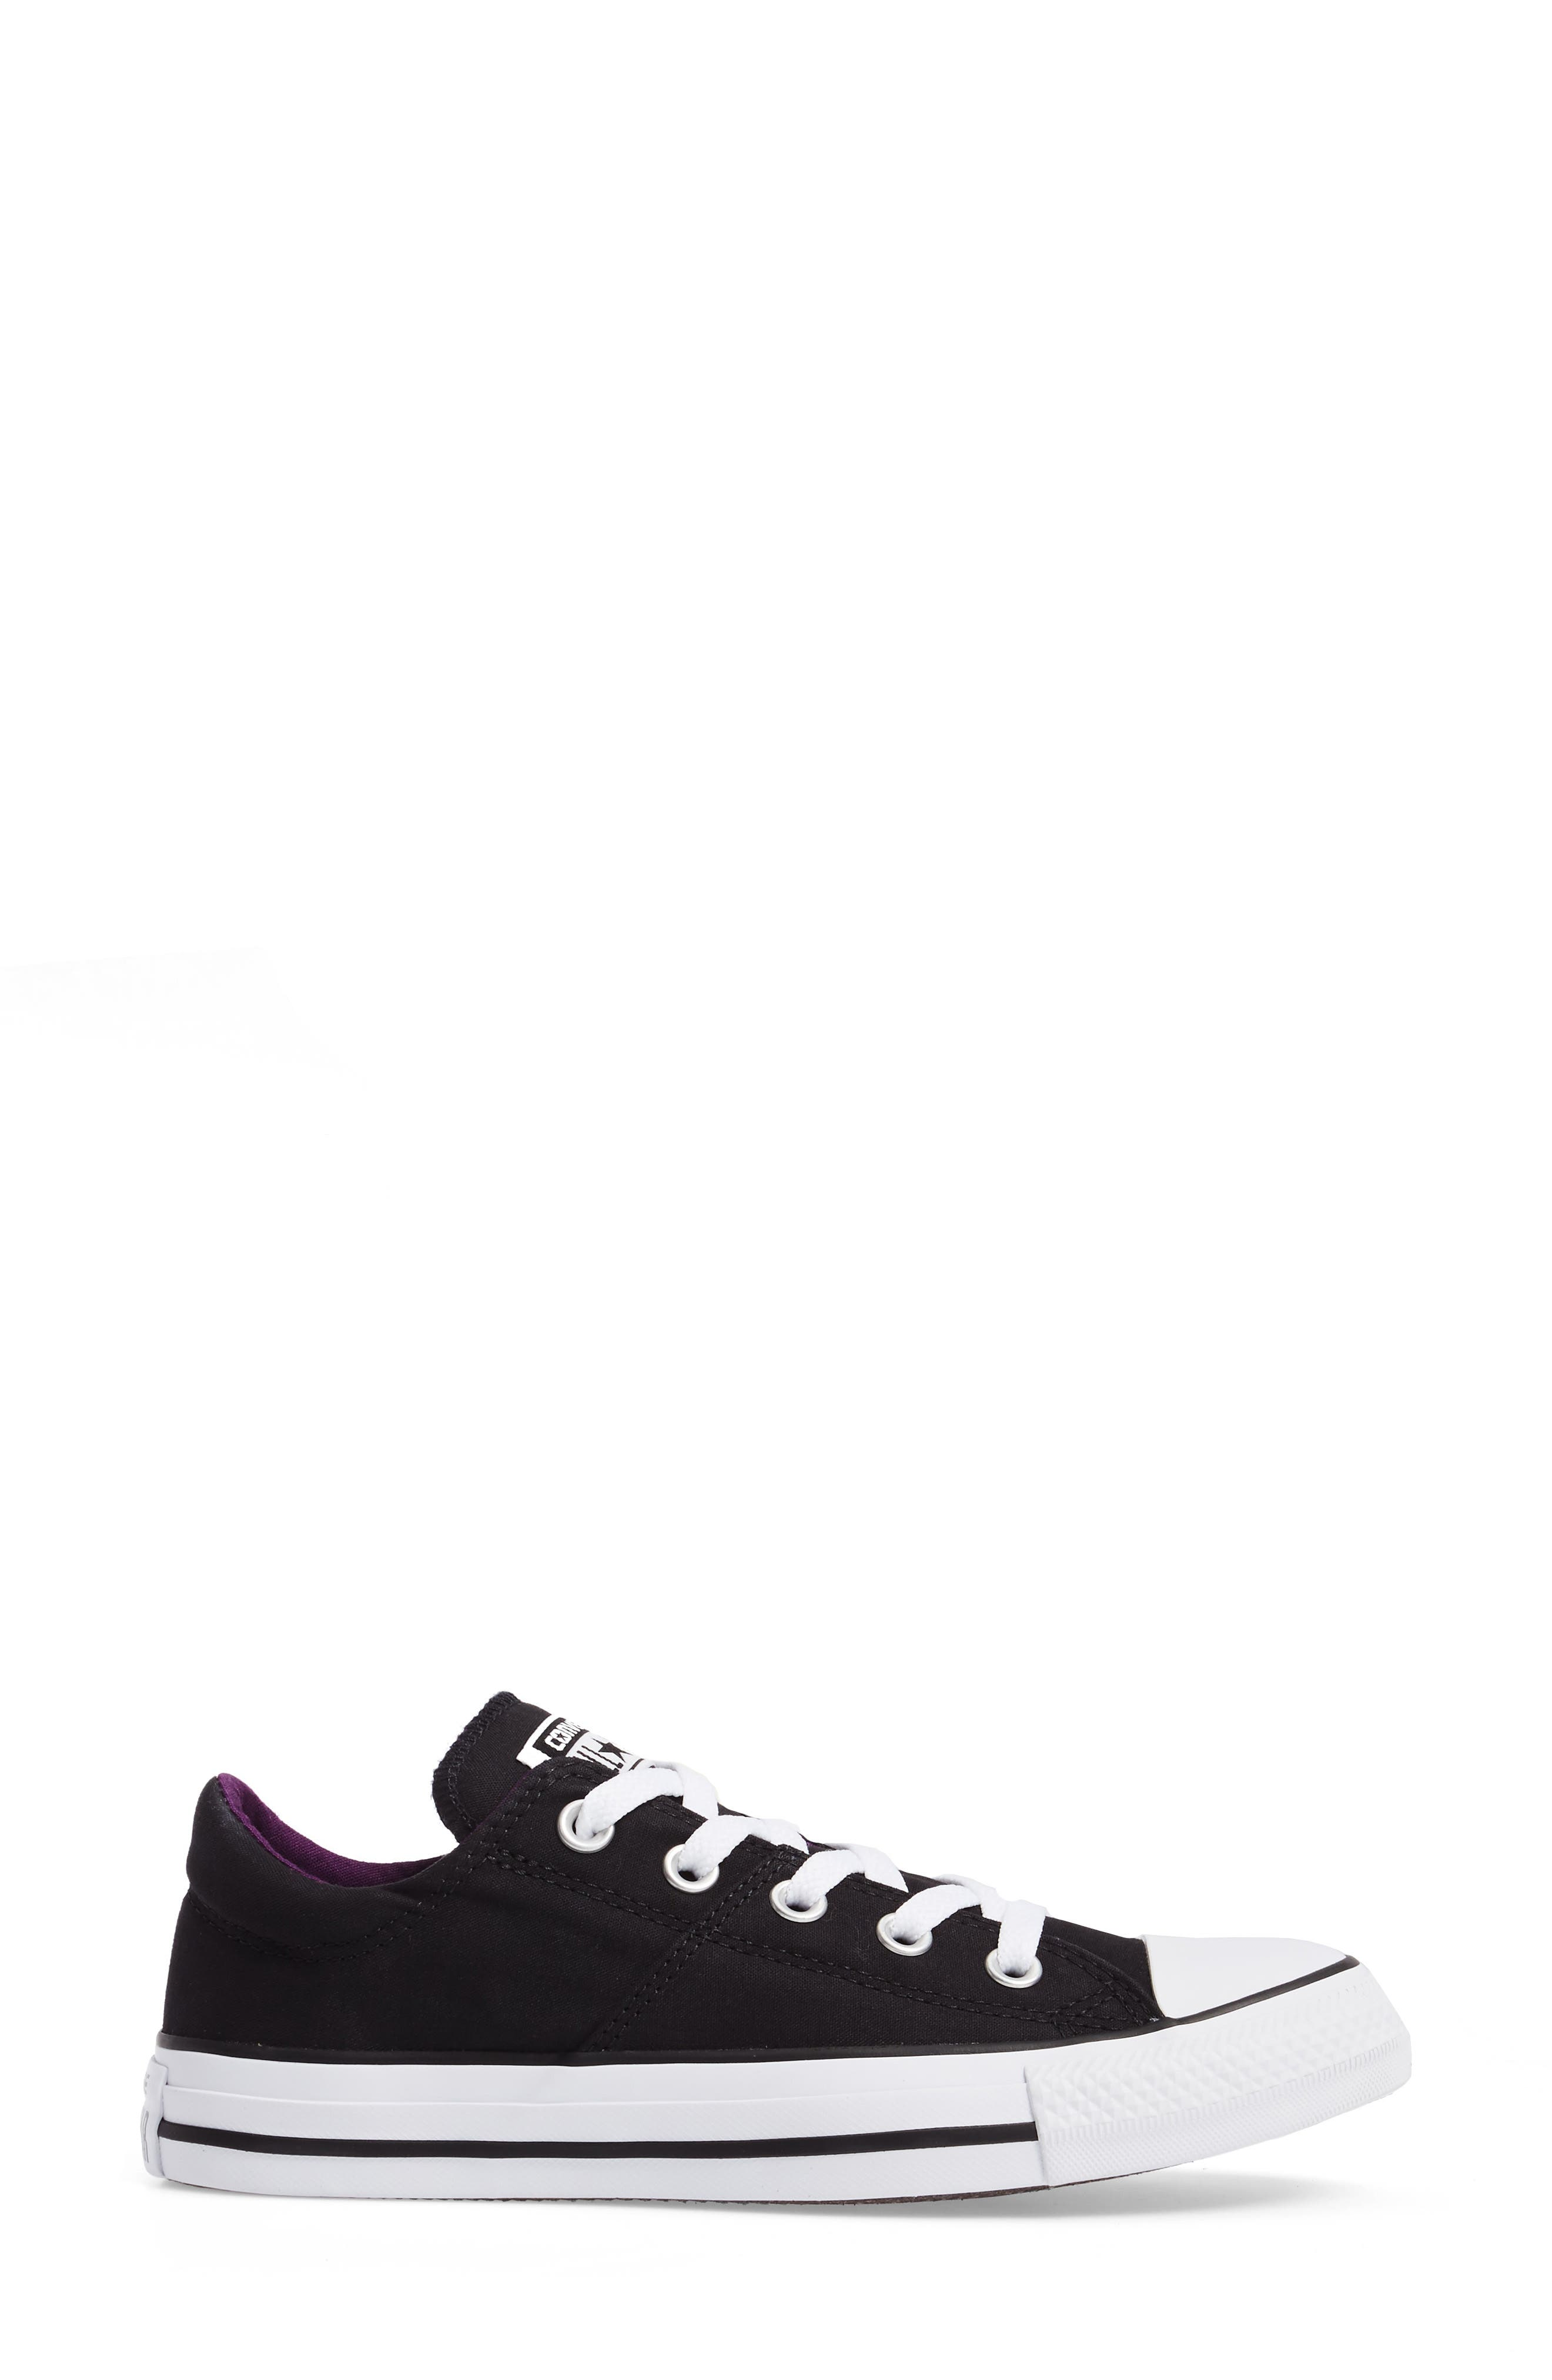 Chuck Taylor<sup>®</sup> All Star<sup>®</sup> Madison Low Top Sneaker,                             Alternate thumbnail 3, color,                             Black Canvas